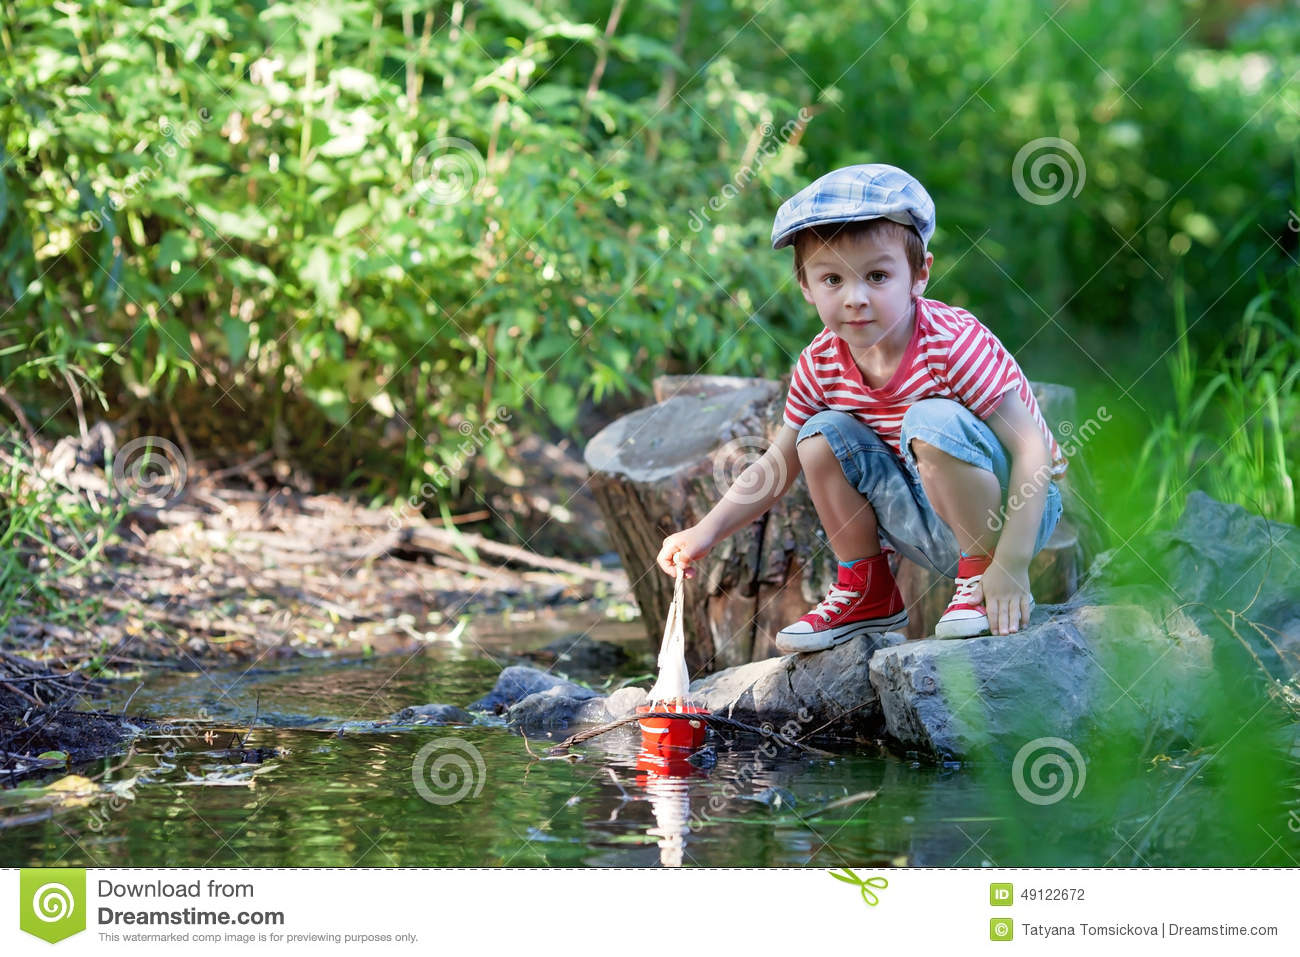 Lillle Boy Toys Boats : Cute little boy playing on a pond with toy boat in hands